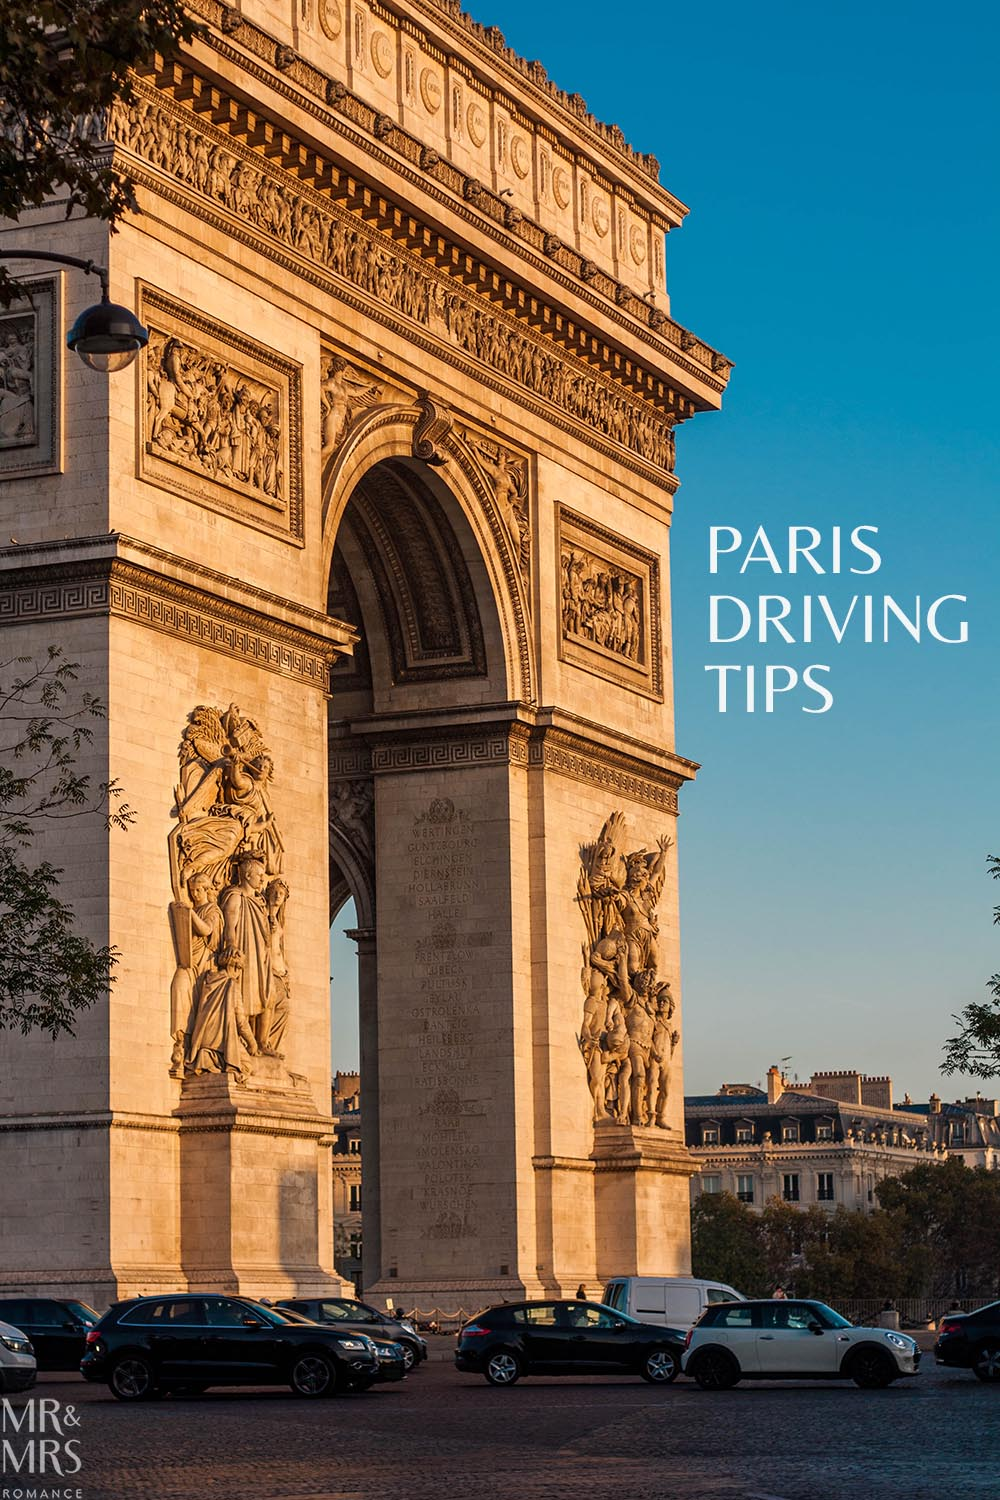 Driving in Paris - hire cars Paris - Arc de Triomphe